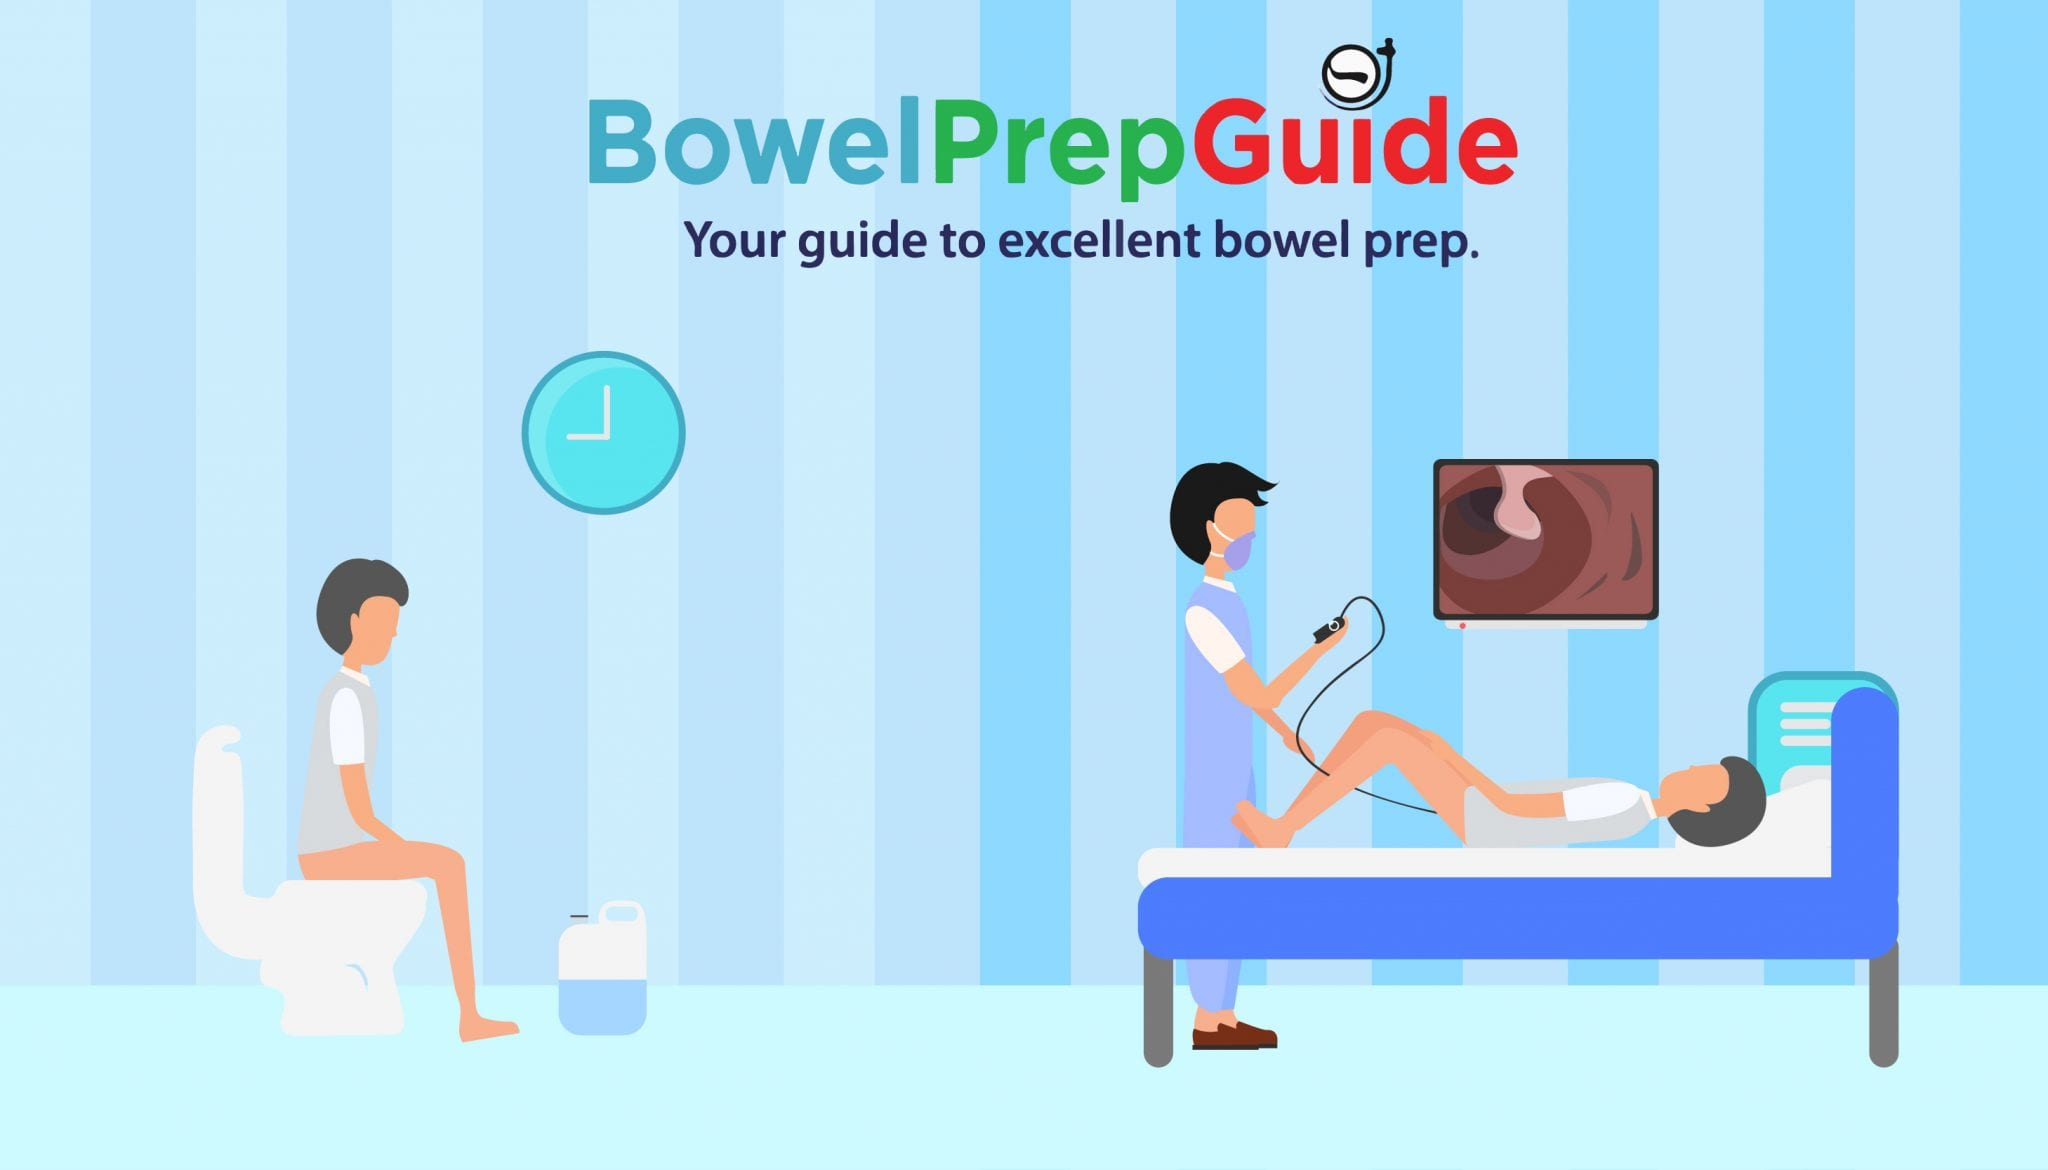 bowelprepguide.com answers your poop questions